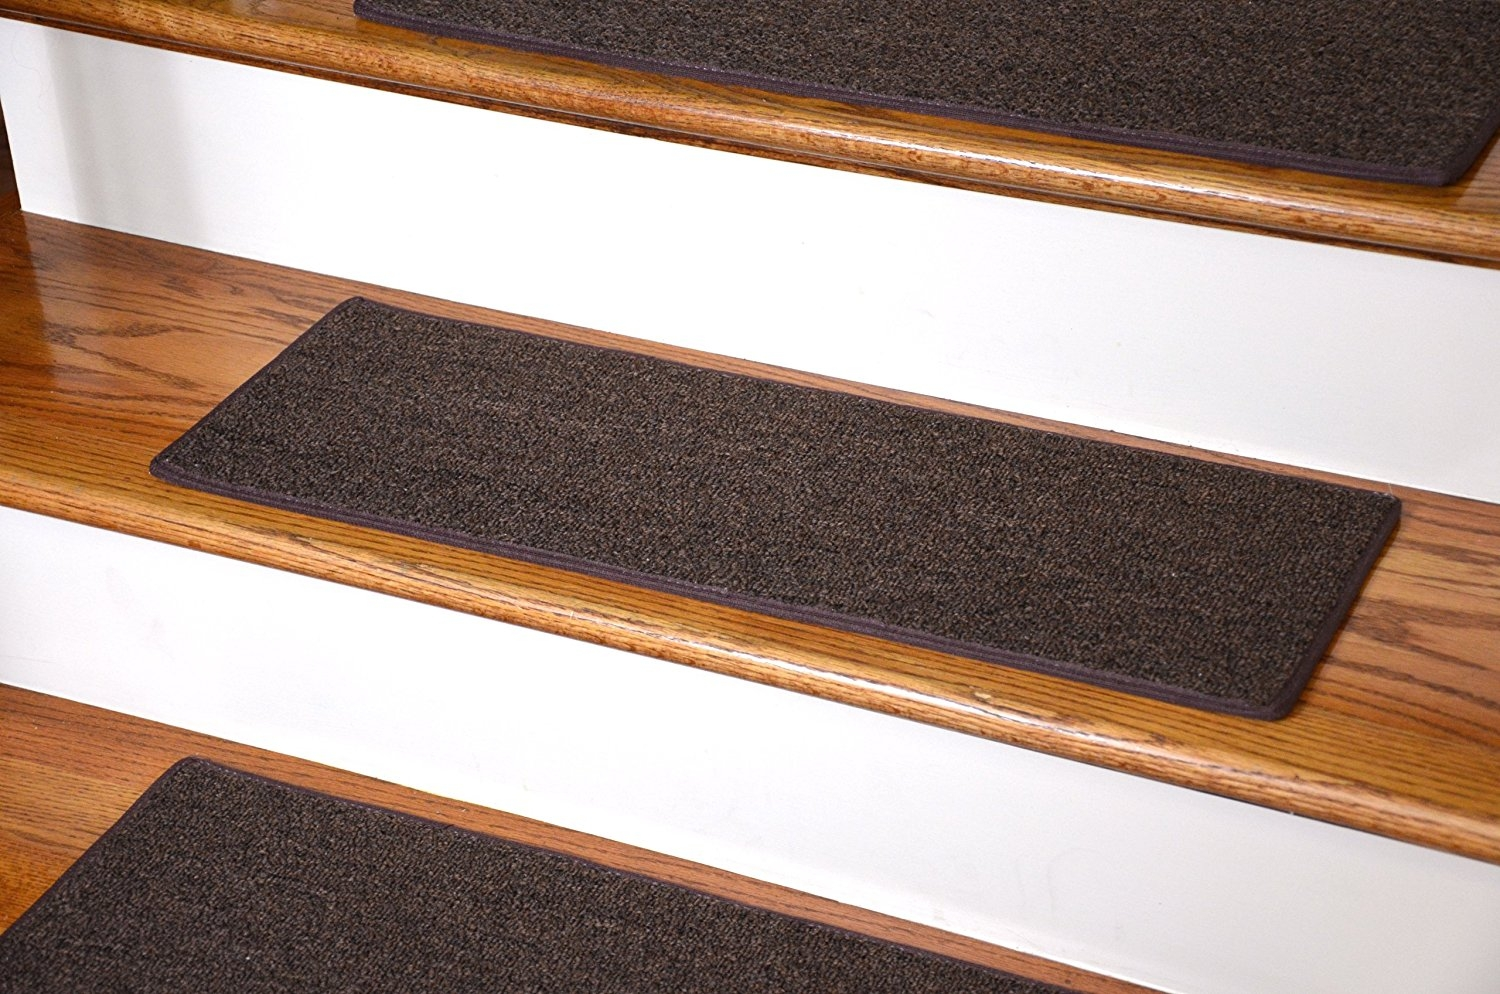 Dean Non Slip Tape Free Pet Friendly Diy Carpet Stair Treadsrugs With Regard To Non Slip Stair Treads Carpets (View 17 of 20)